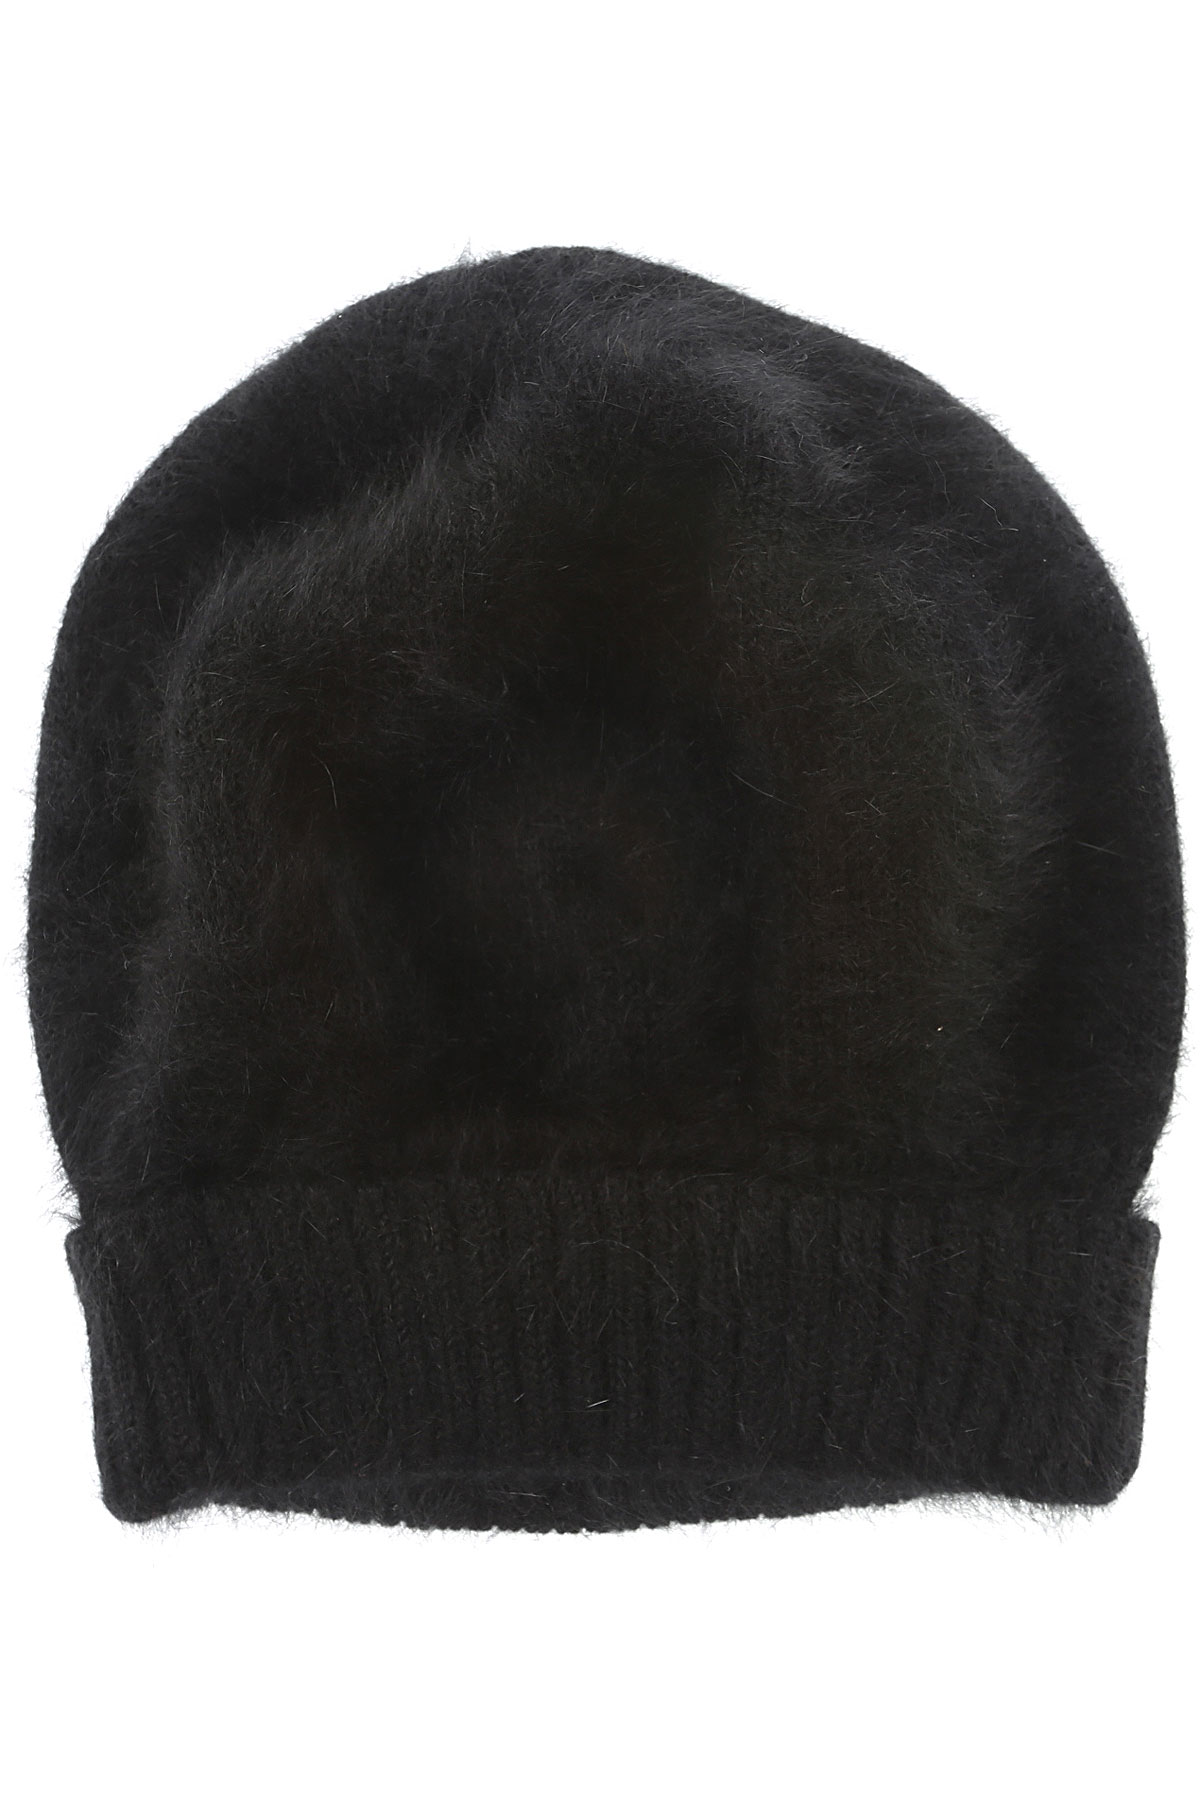 Image of Roberto Collina Hat for Women, Black, Angora, 2017